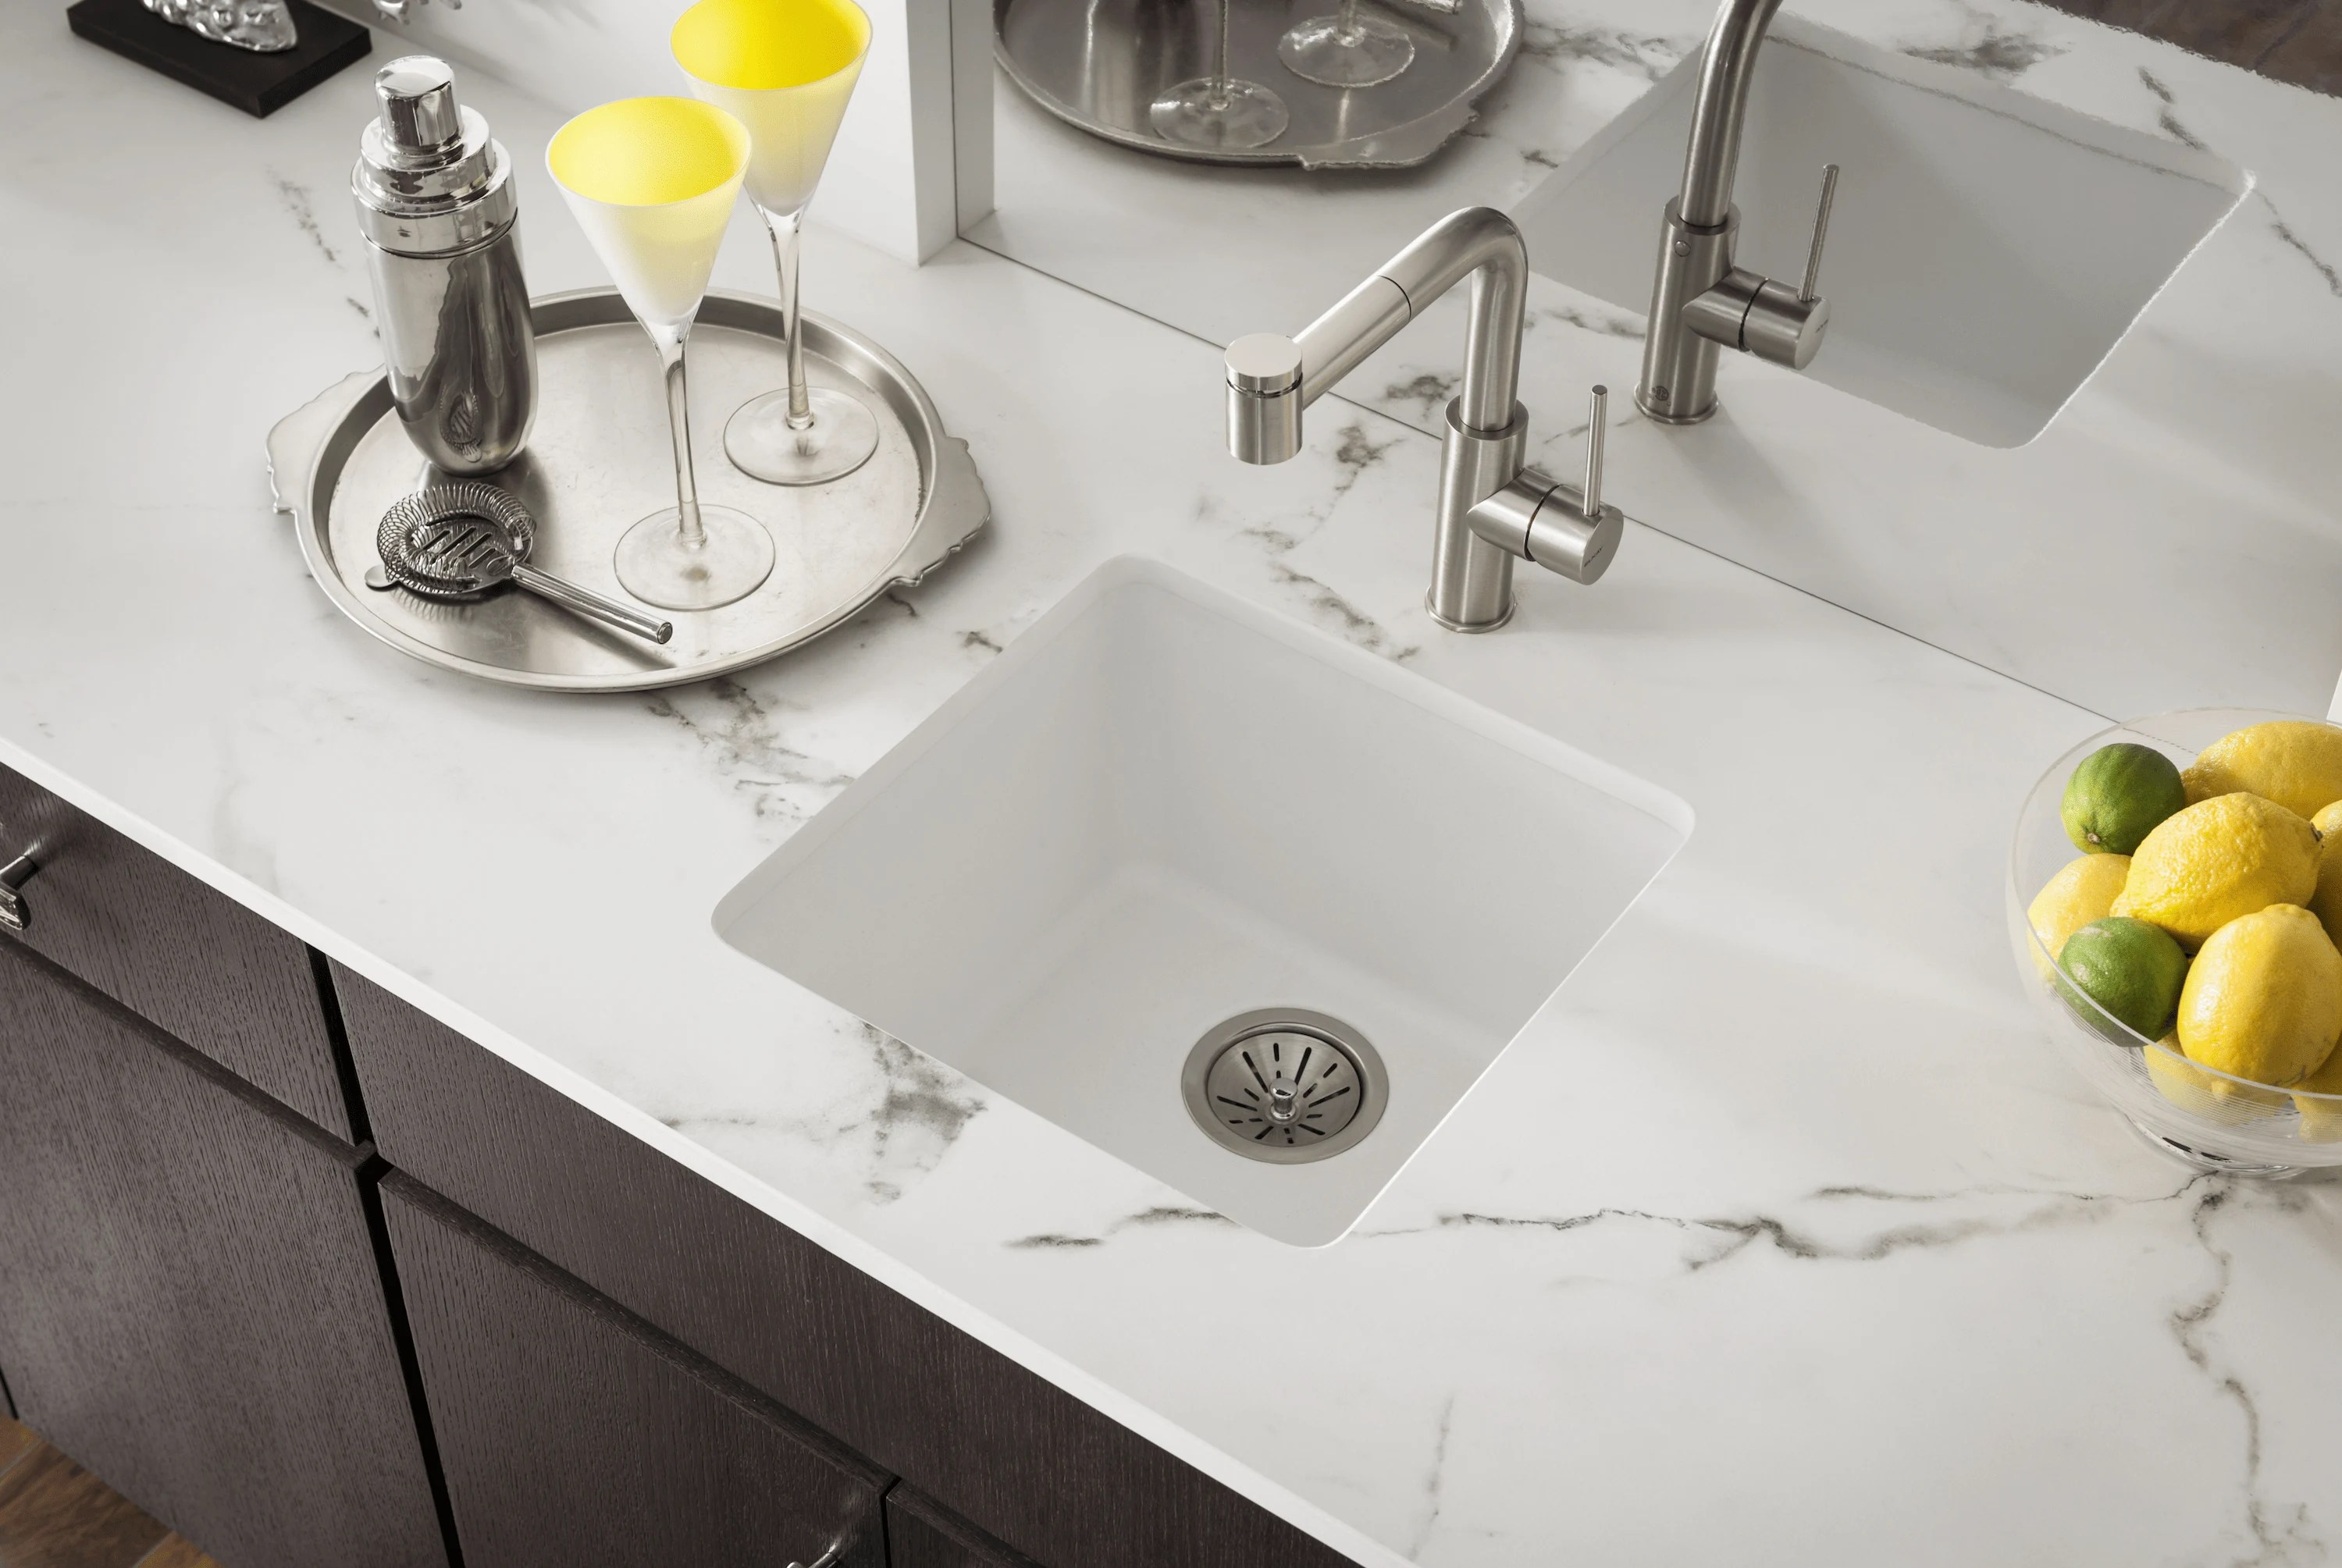 Man Made Quartz Countertops Cost Quartz Sinks Everything You Need To Know Qualitybath Discover